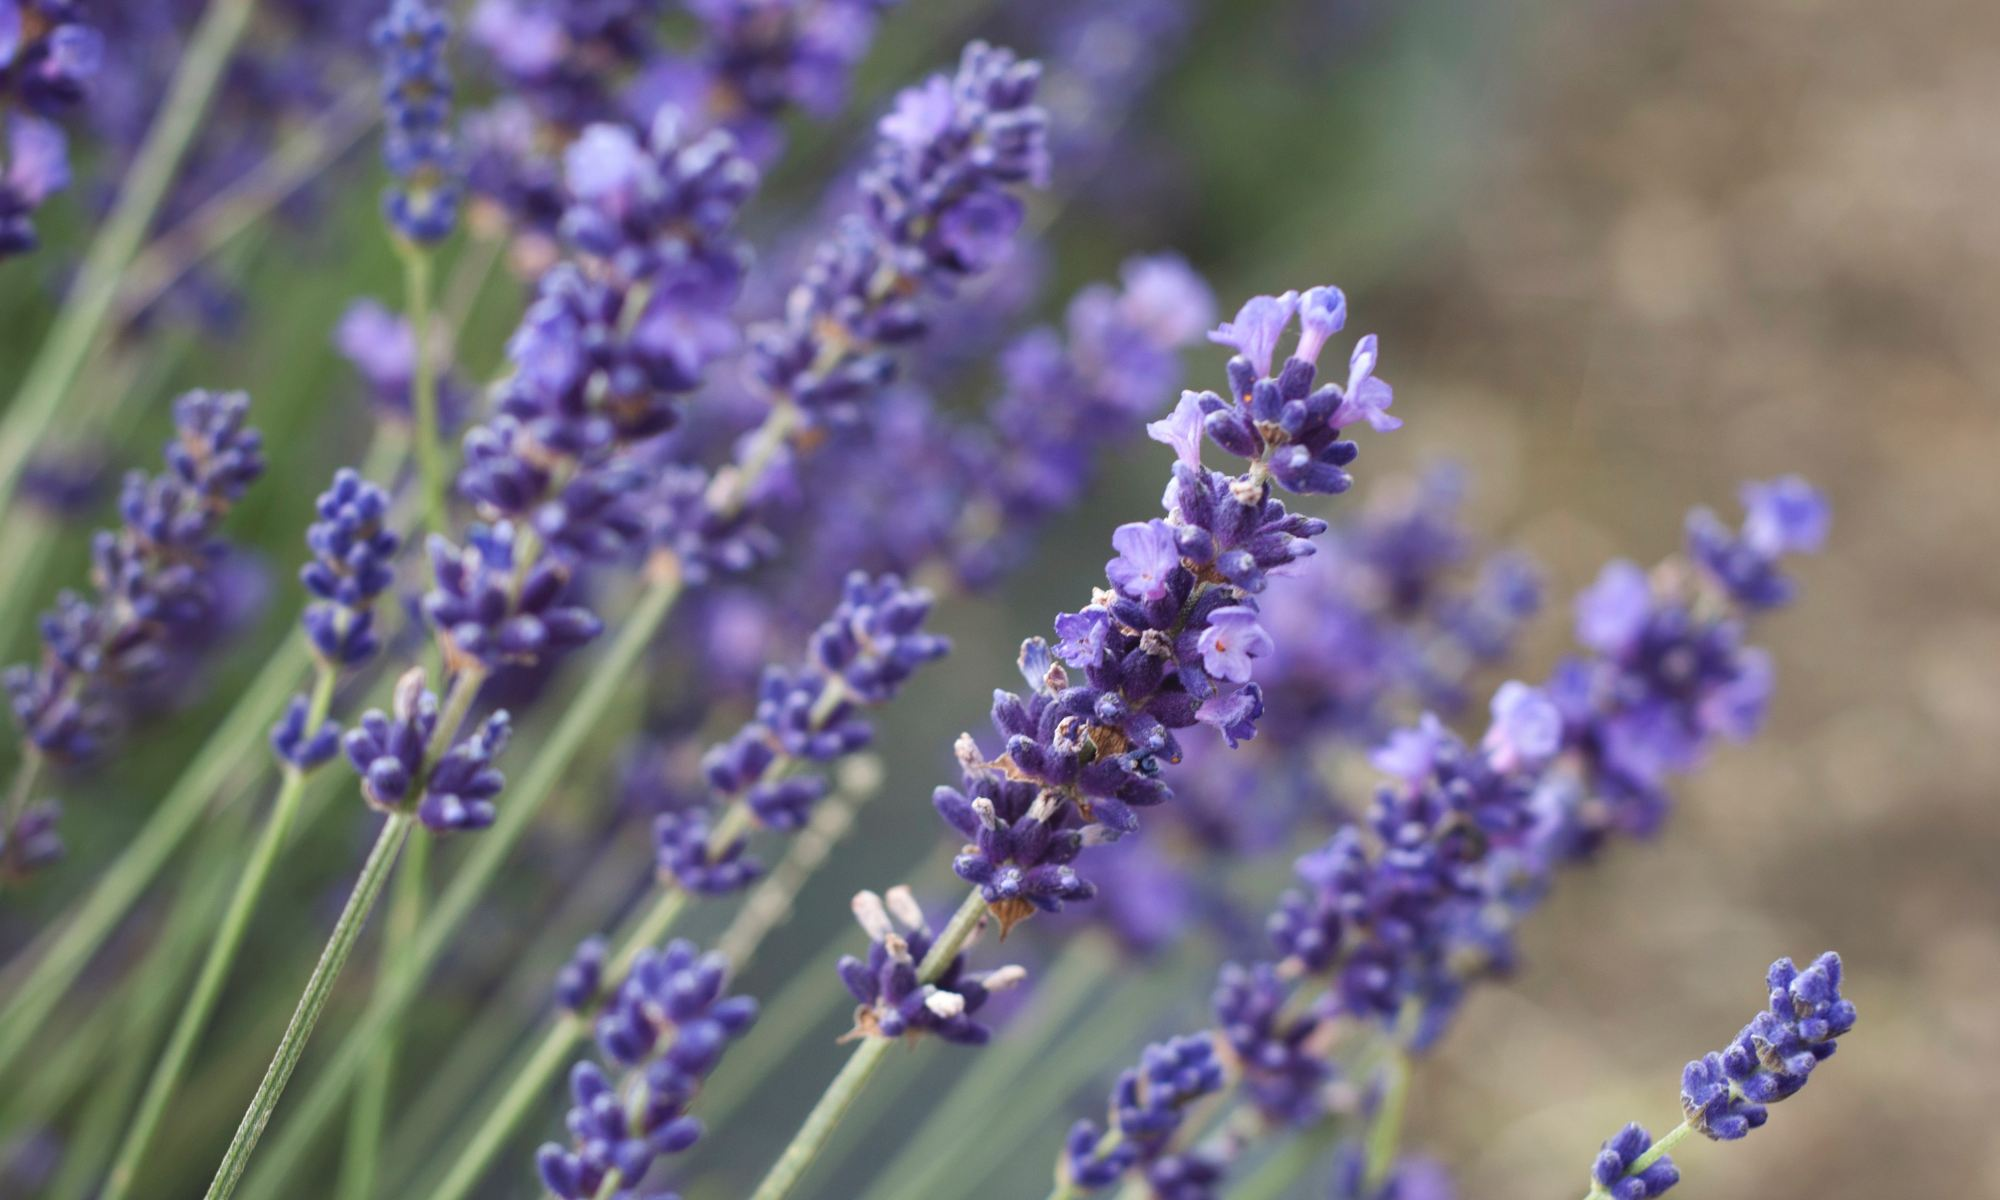 Lavender-colored flowers